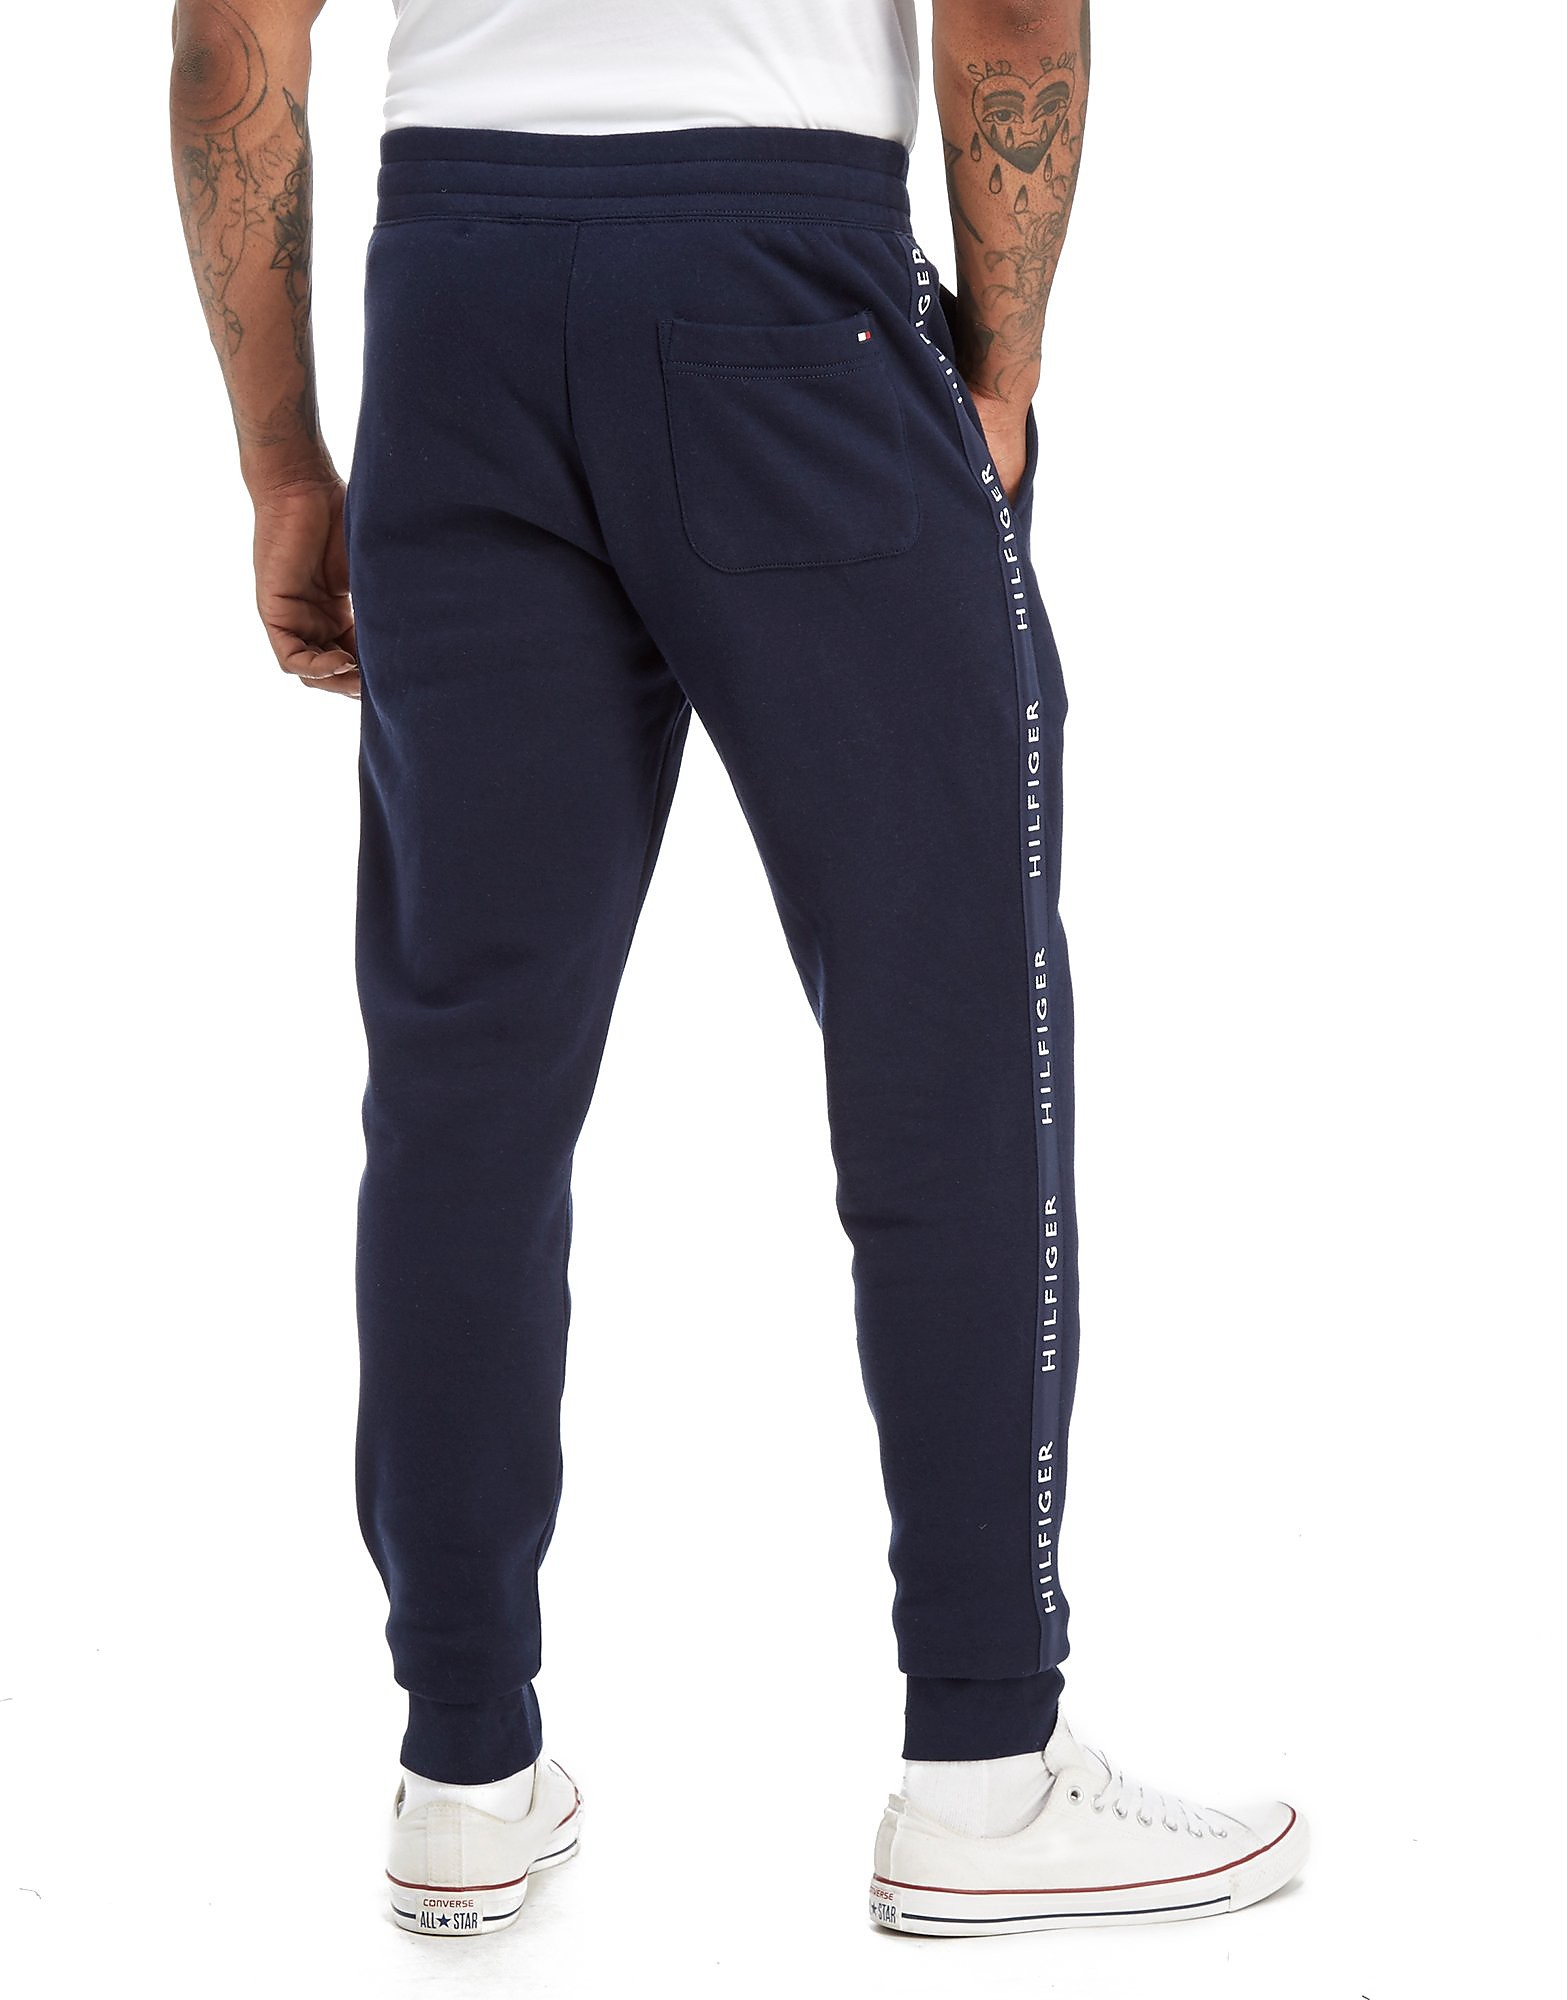 Tommy Hilfiger Side Tape Fleece Pants